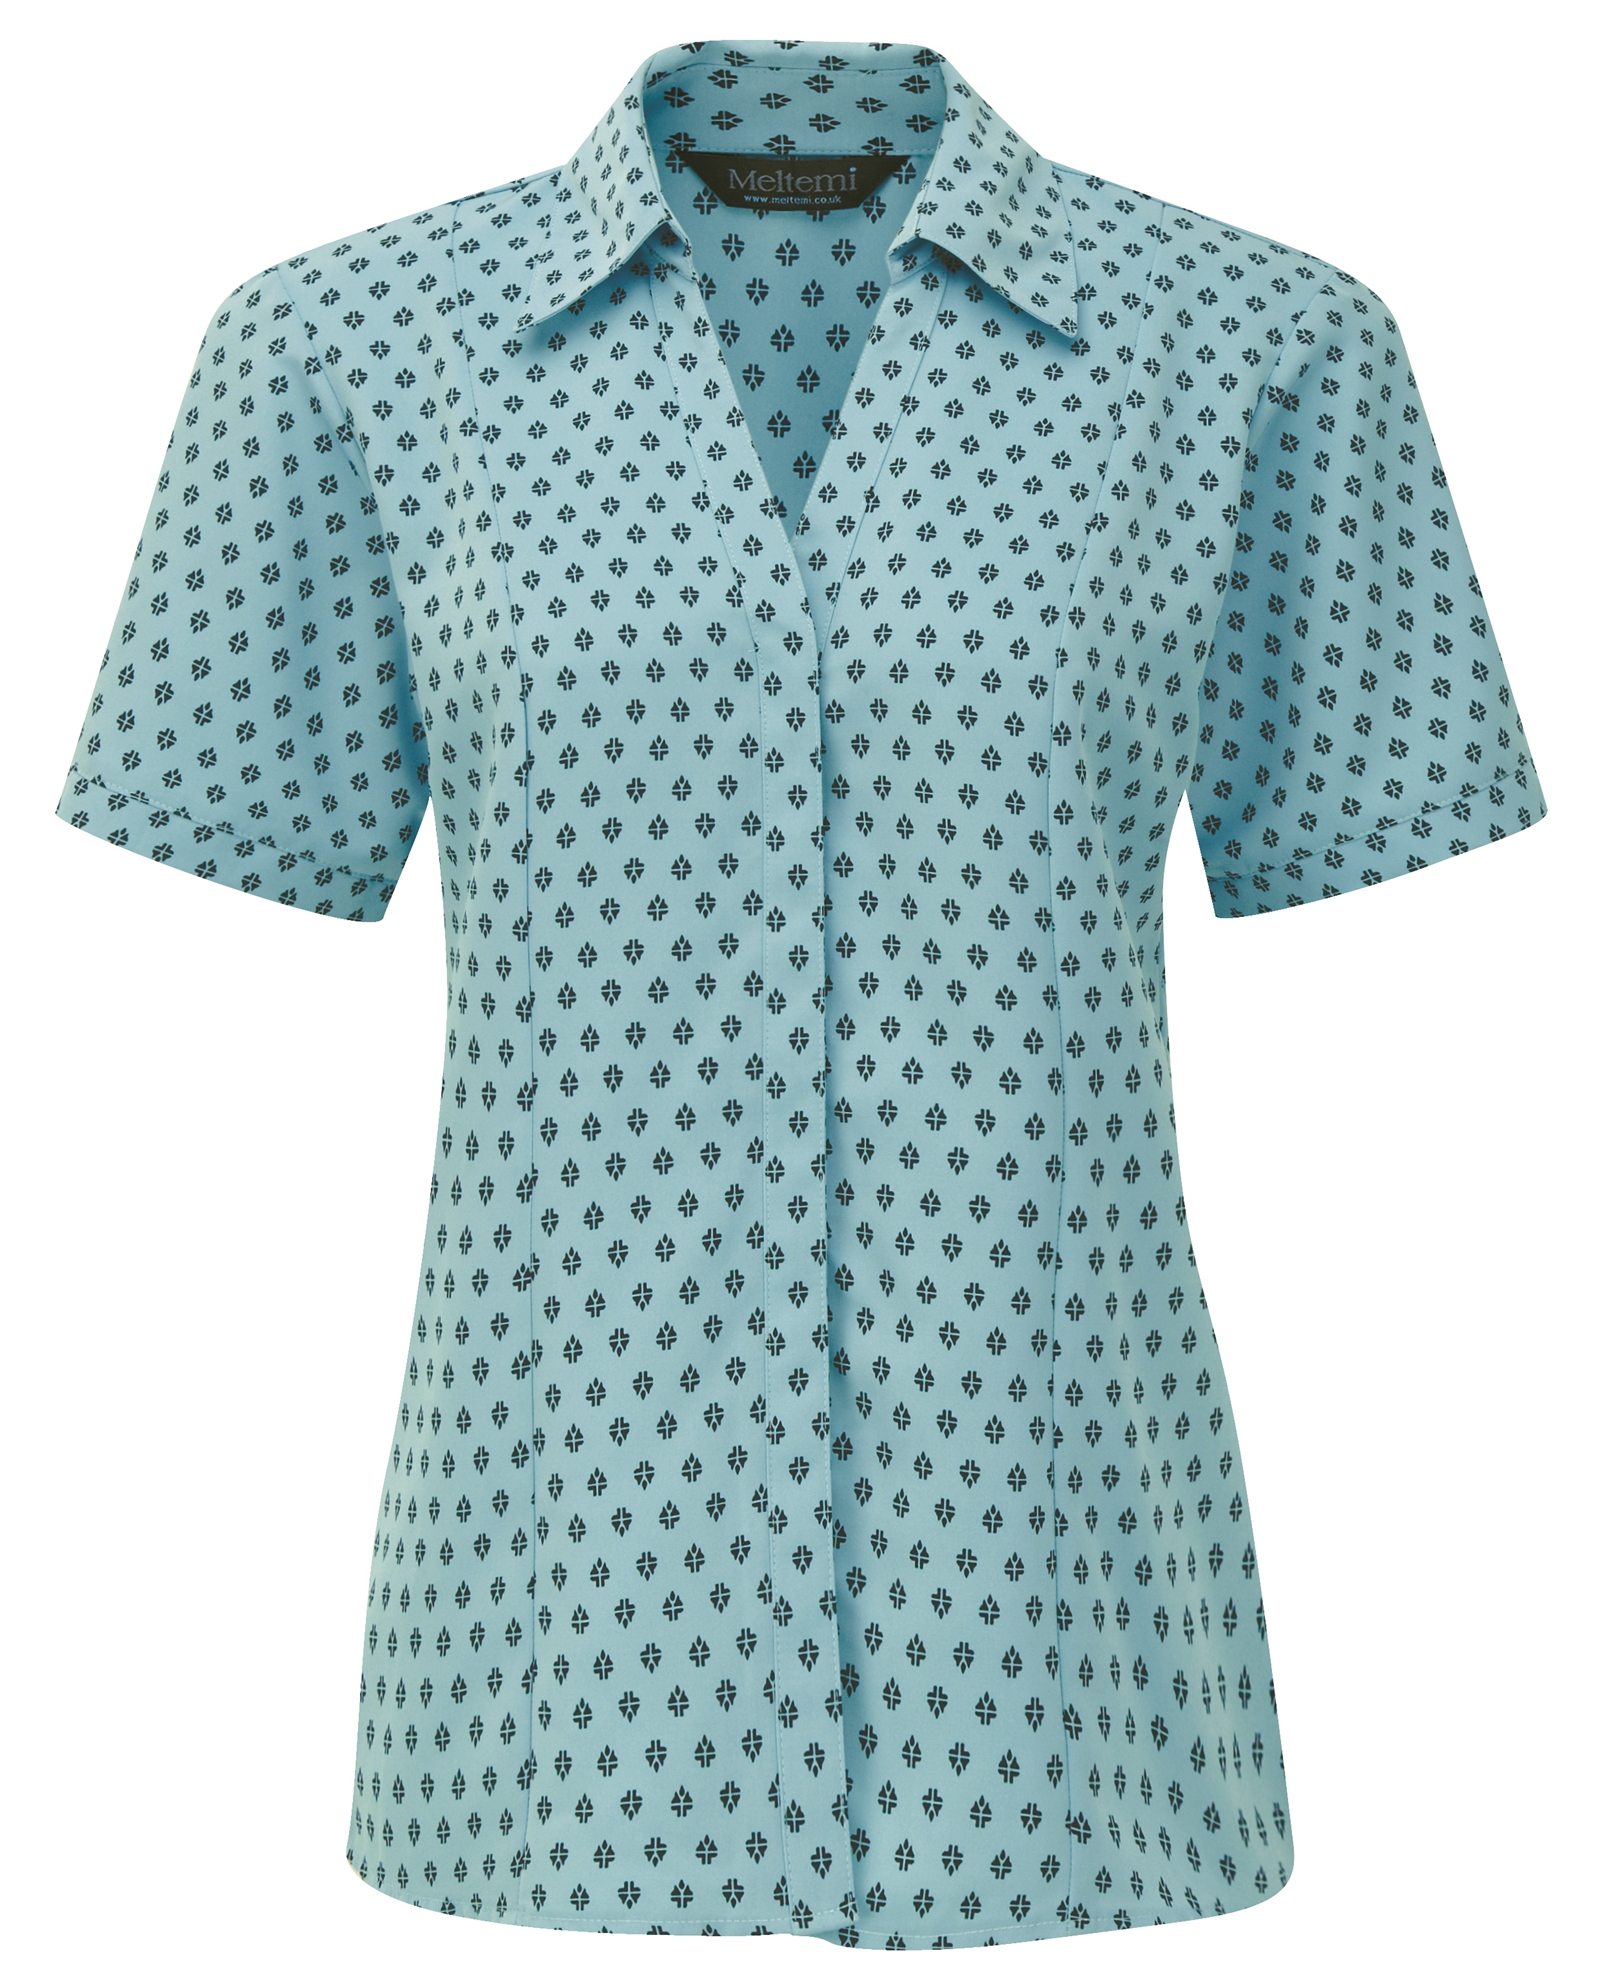 Picture of Semi-Fitted Polyester Blouse - Light Blue/Navy Fleur Print